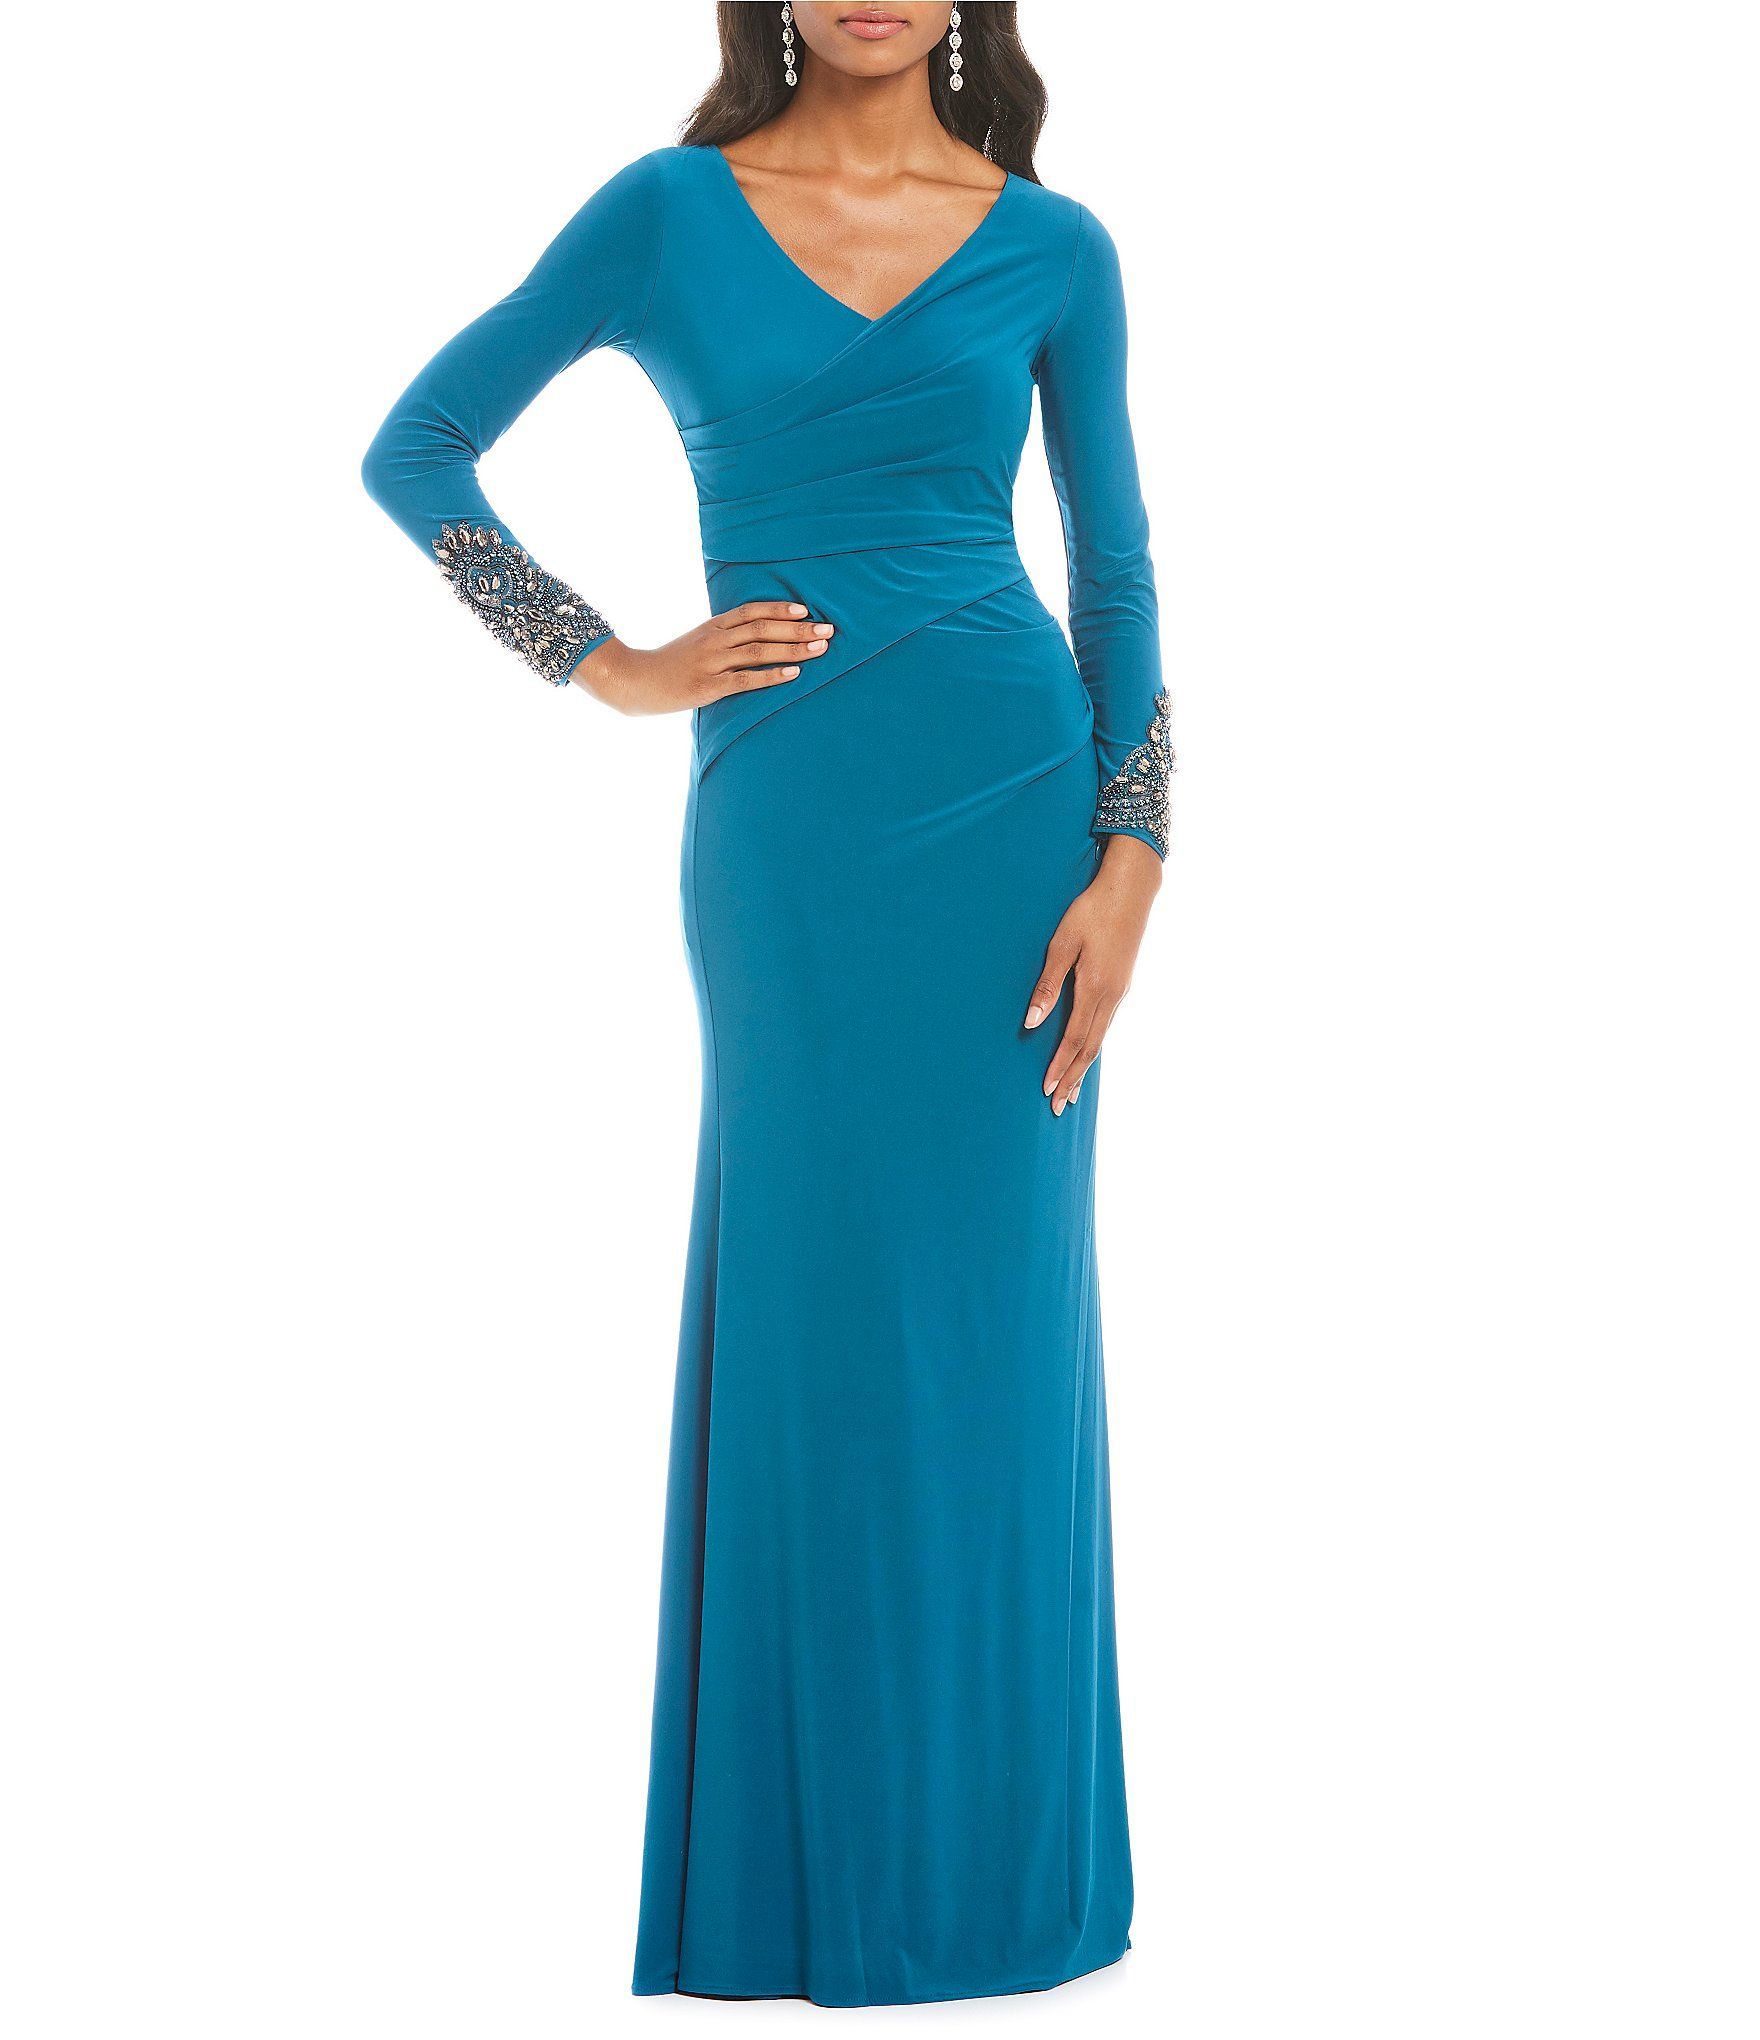 2f46e27afe8 Shop for Adrianna Papell V-Neck Embellished Draped Jersey Gown at  Dillards.com. Visit Dillards.com to find clothing